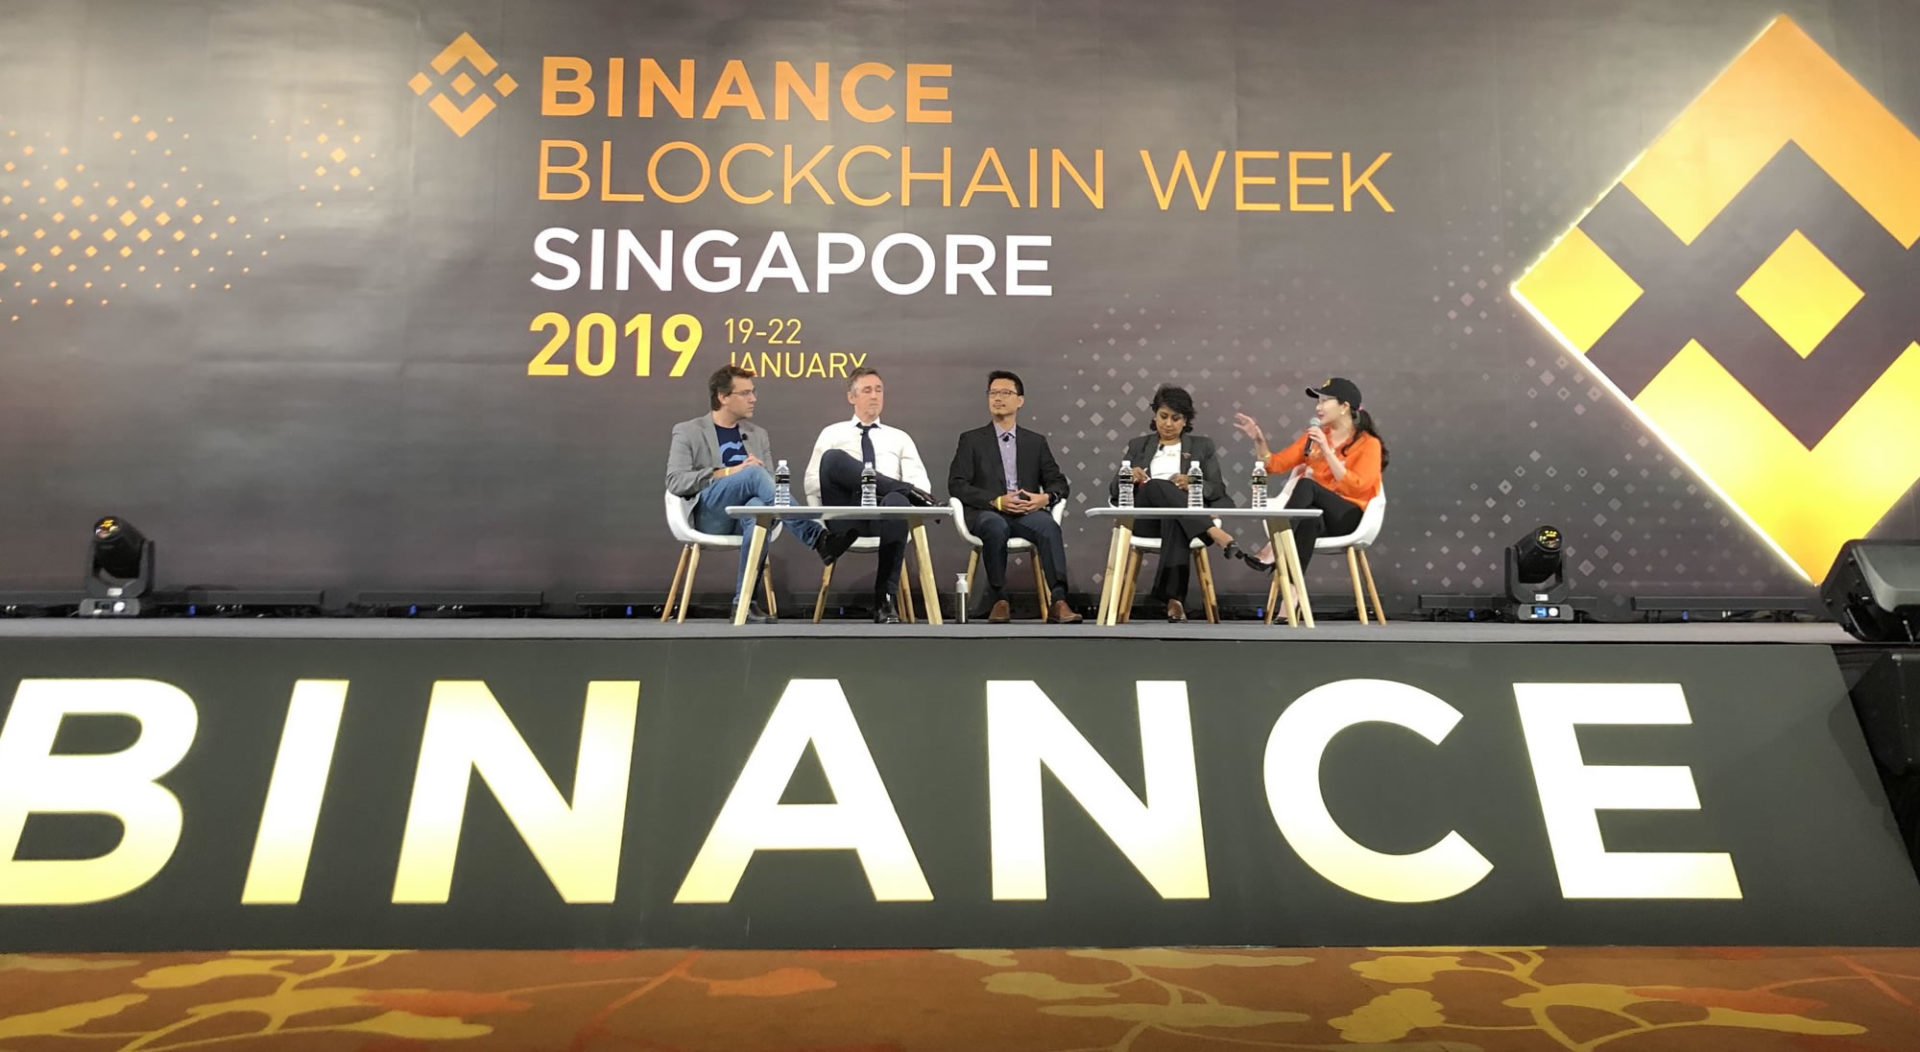 binance conference